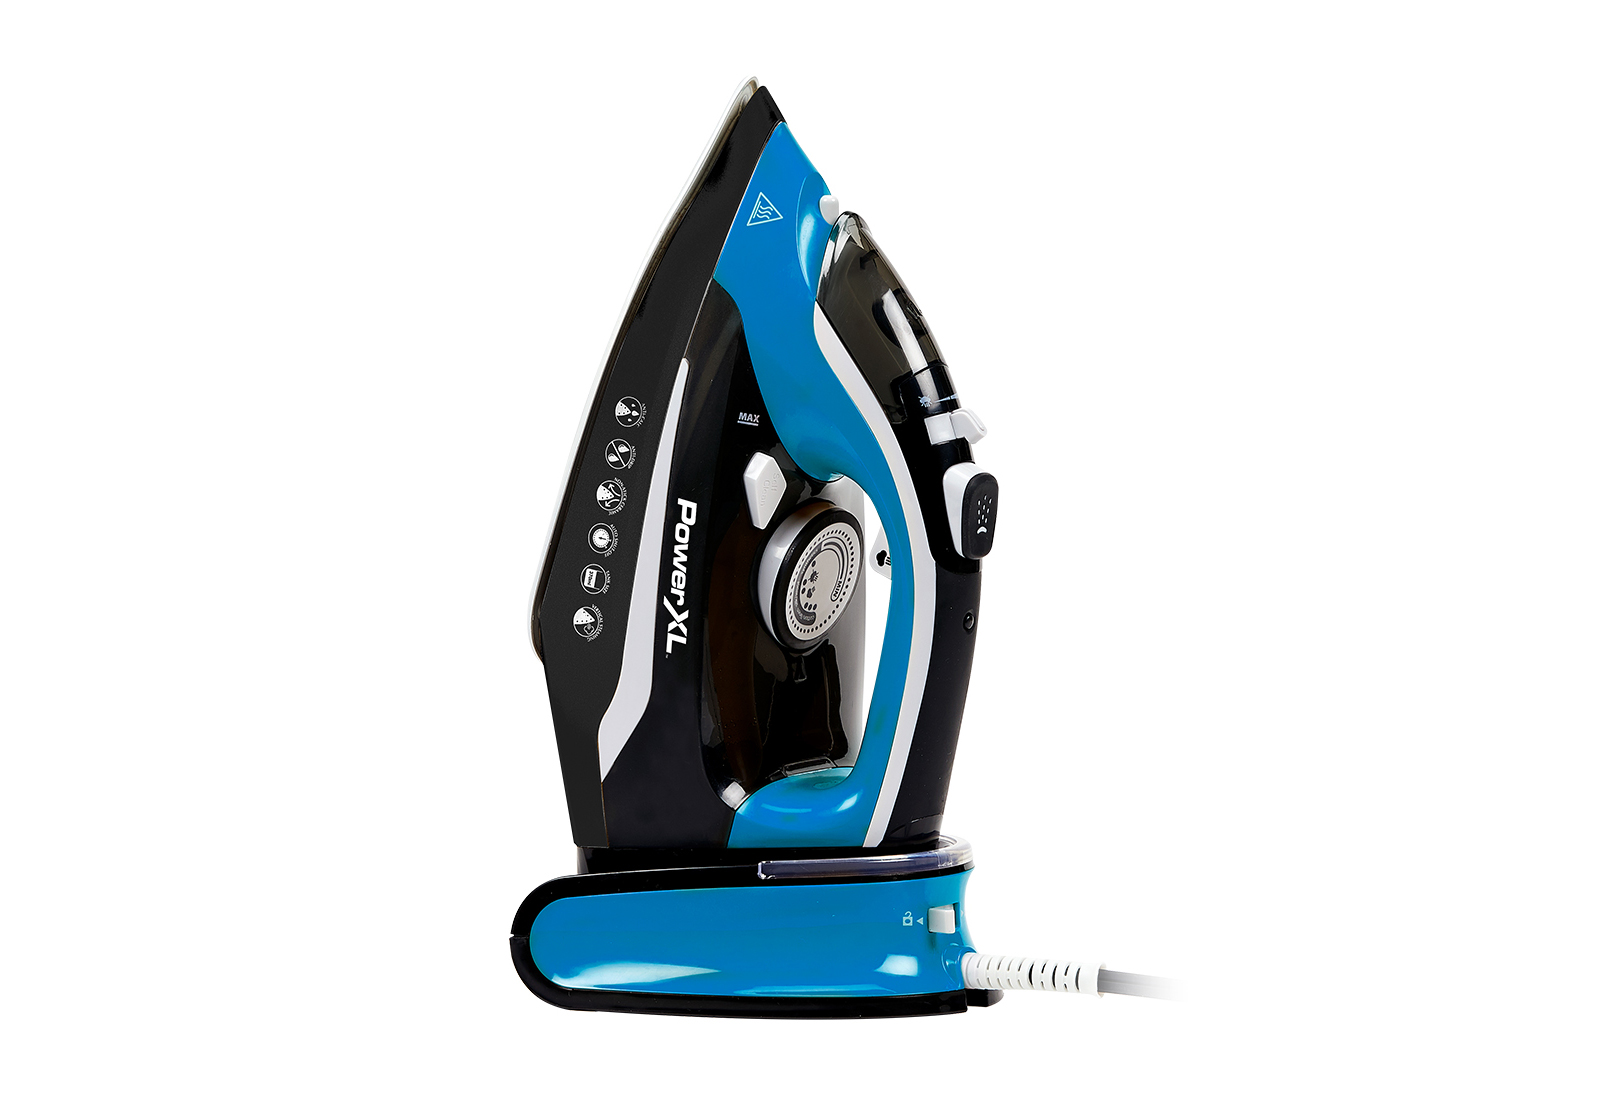 PowerXL Cordless Iron & Steamer Deluxe Product Image